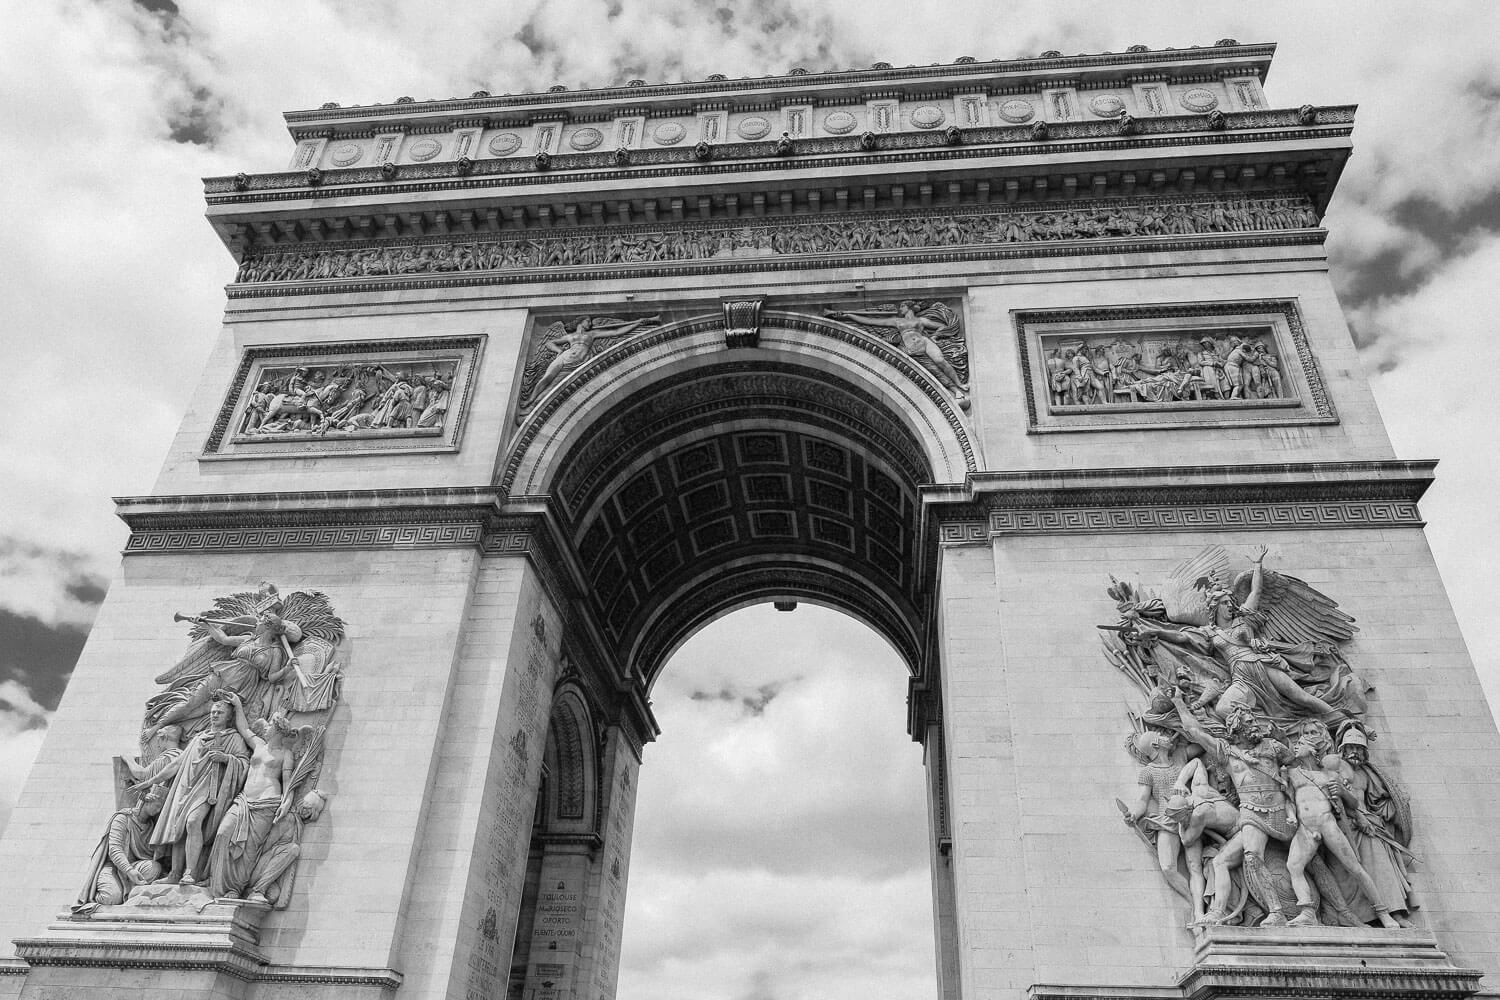 "The Arc de Triomphe in Paris. Travel photography and guide by © Natasha Lequepeys for ""And Then I Met Yoko"". #paris #paristravel #photoblog #travelguide #france #parisitinerary #parishighlights #parissights #travelblog #travelphotography #landscapephotography #travelitinerary #fujifilm #paristravelguide #architecturephotography #europe #travelblogger #wanderlust #explore #travel"